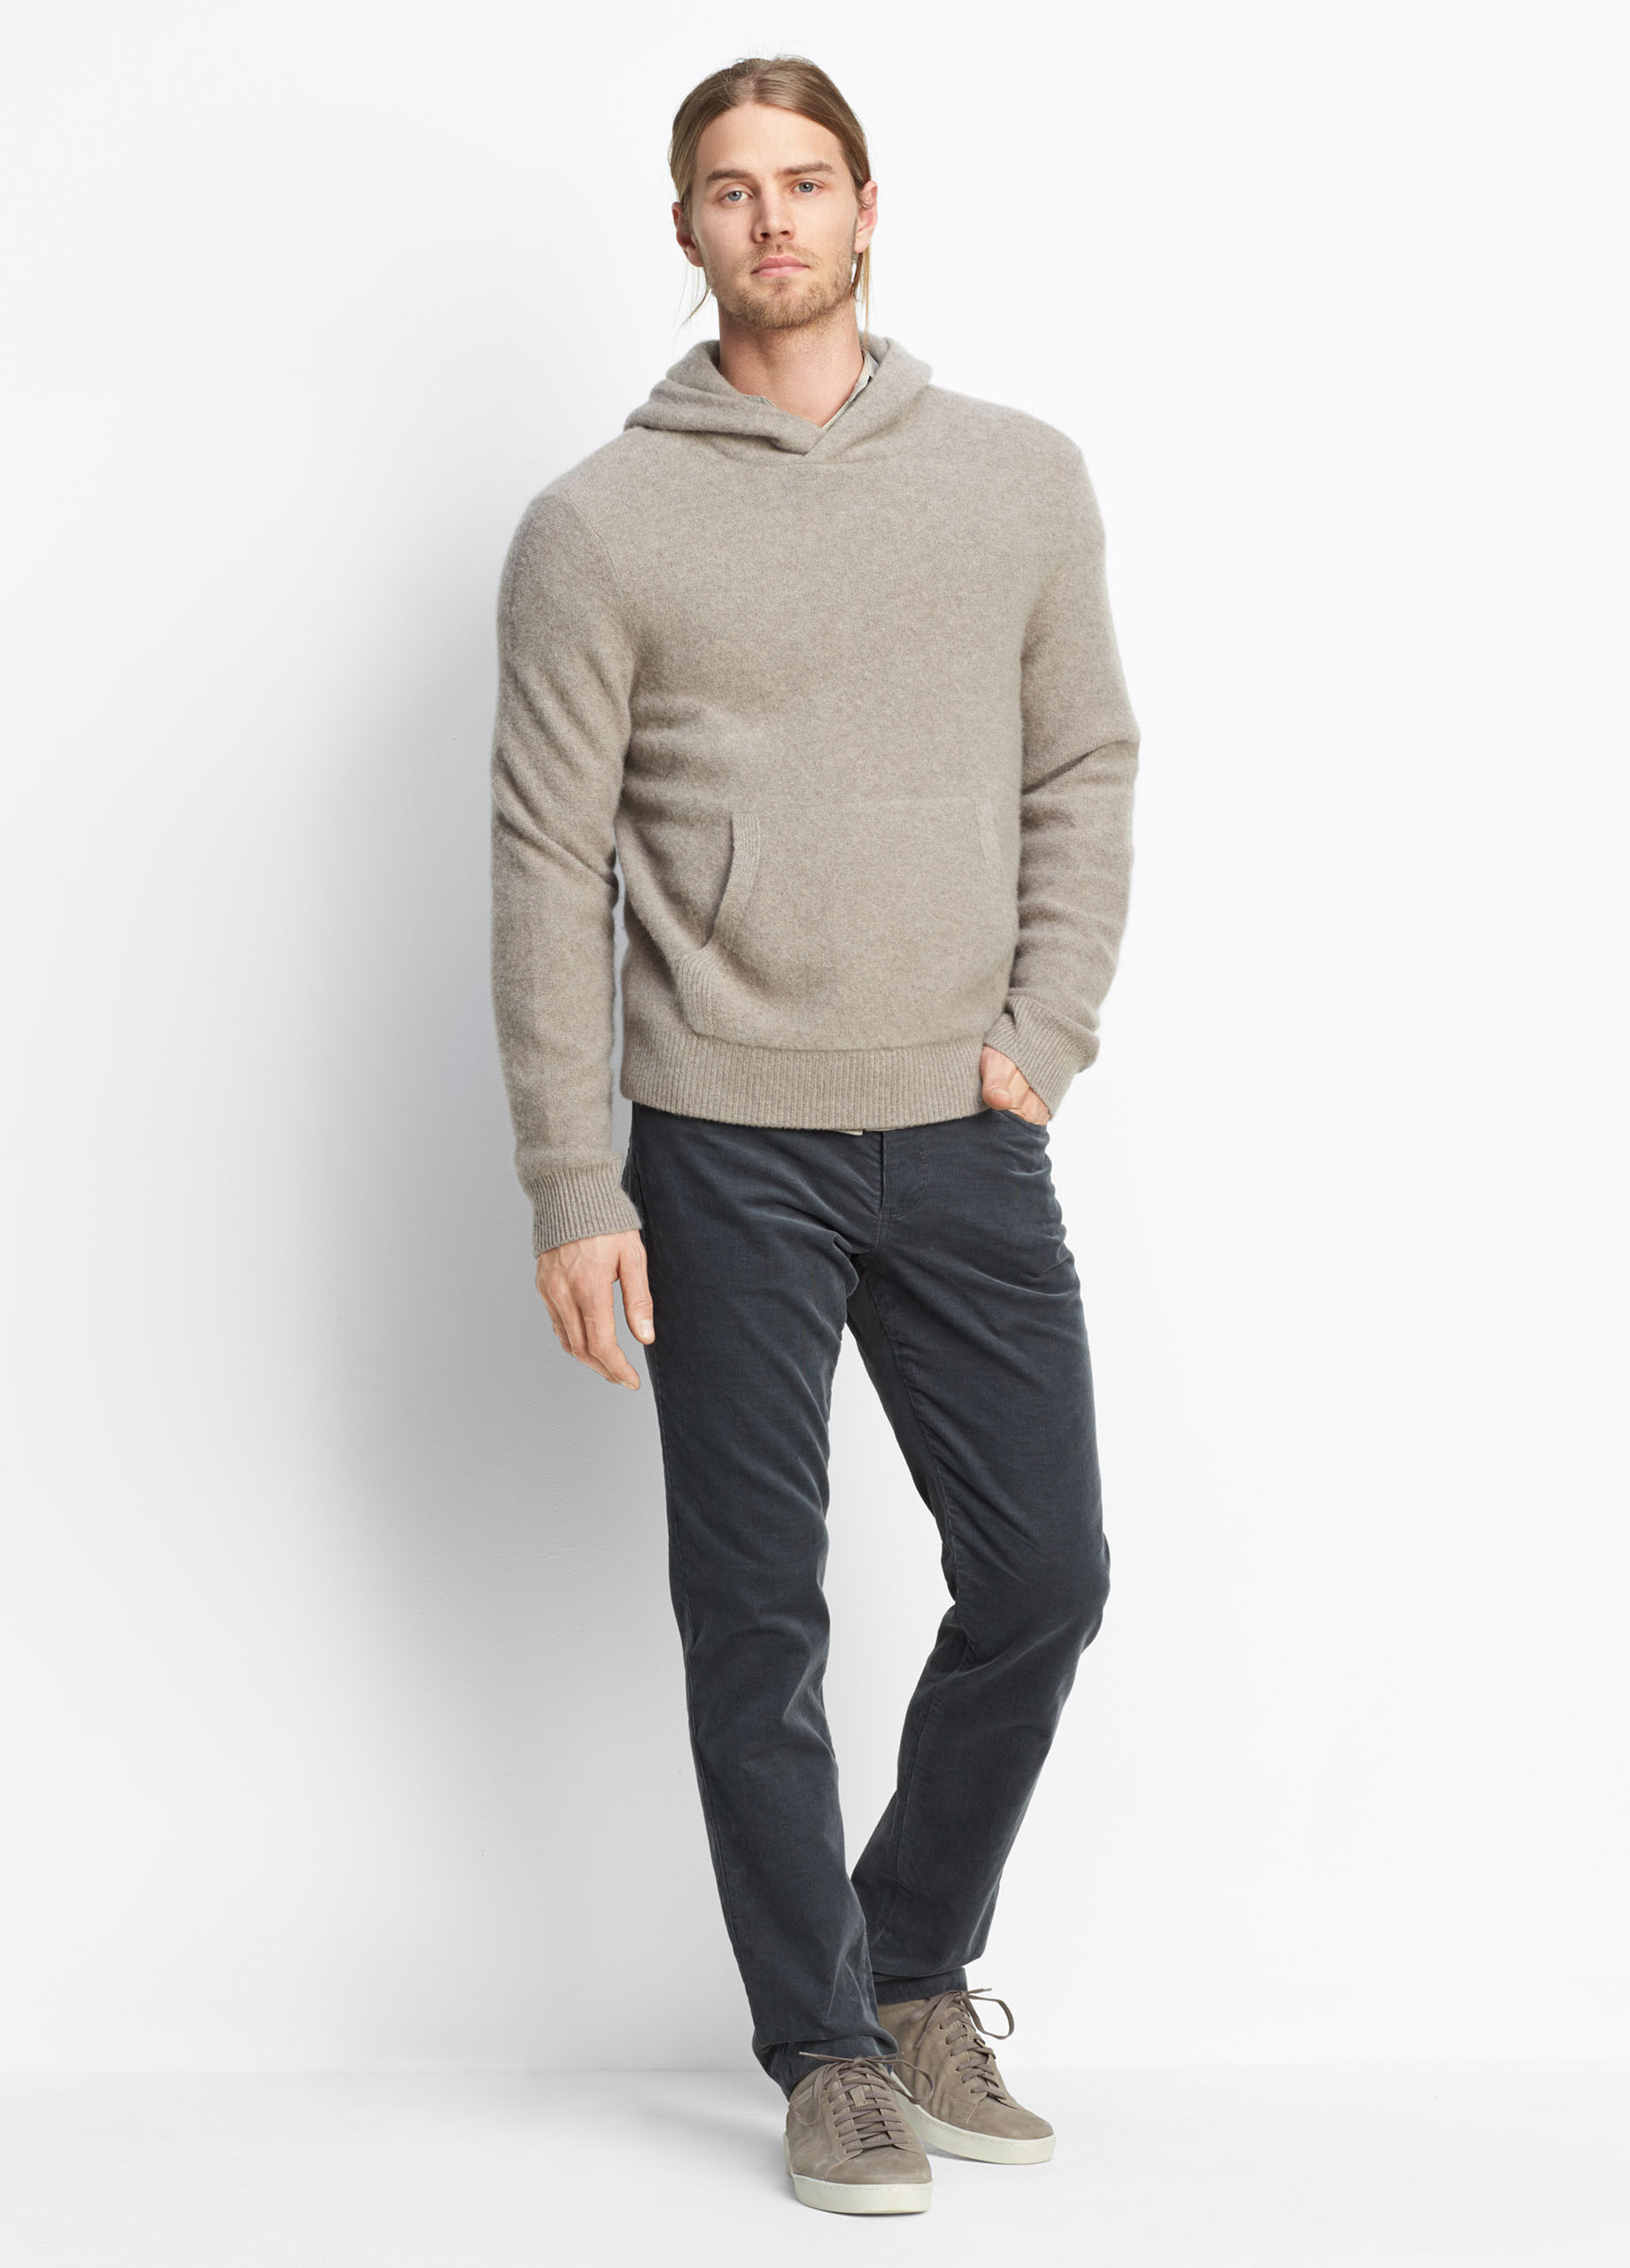 Loose Knit Crewneck T-shirt